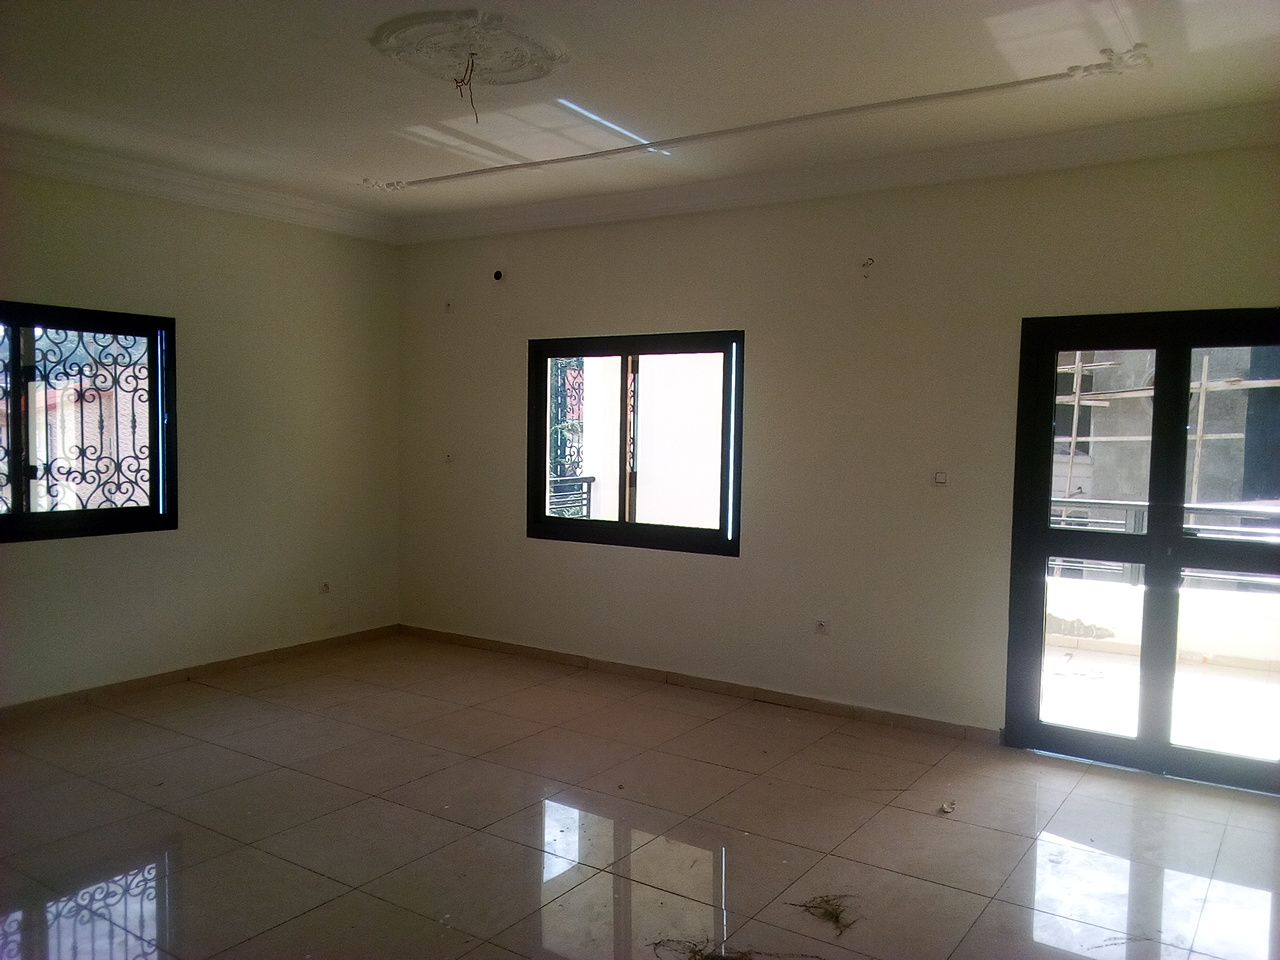 Apartment to rent - Yaoundé, Bastos, pas loin du golf - 1 living room(s), 3 bedroom(s), 3 bathroom(s) - 1 000 000 FCFA / month